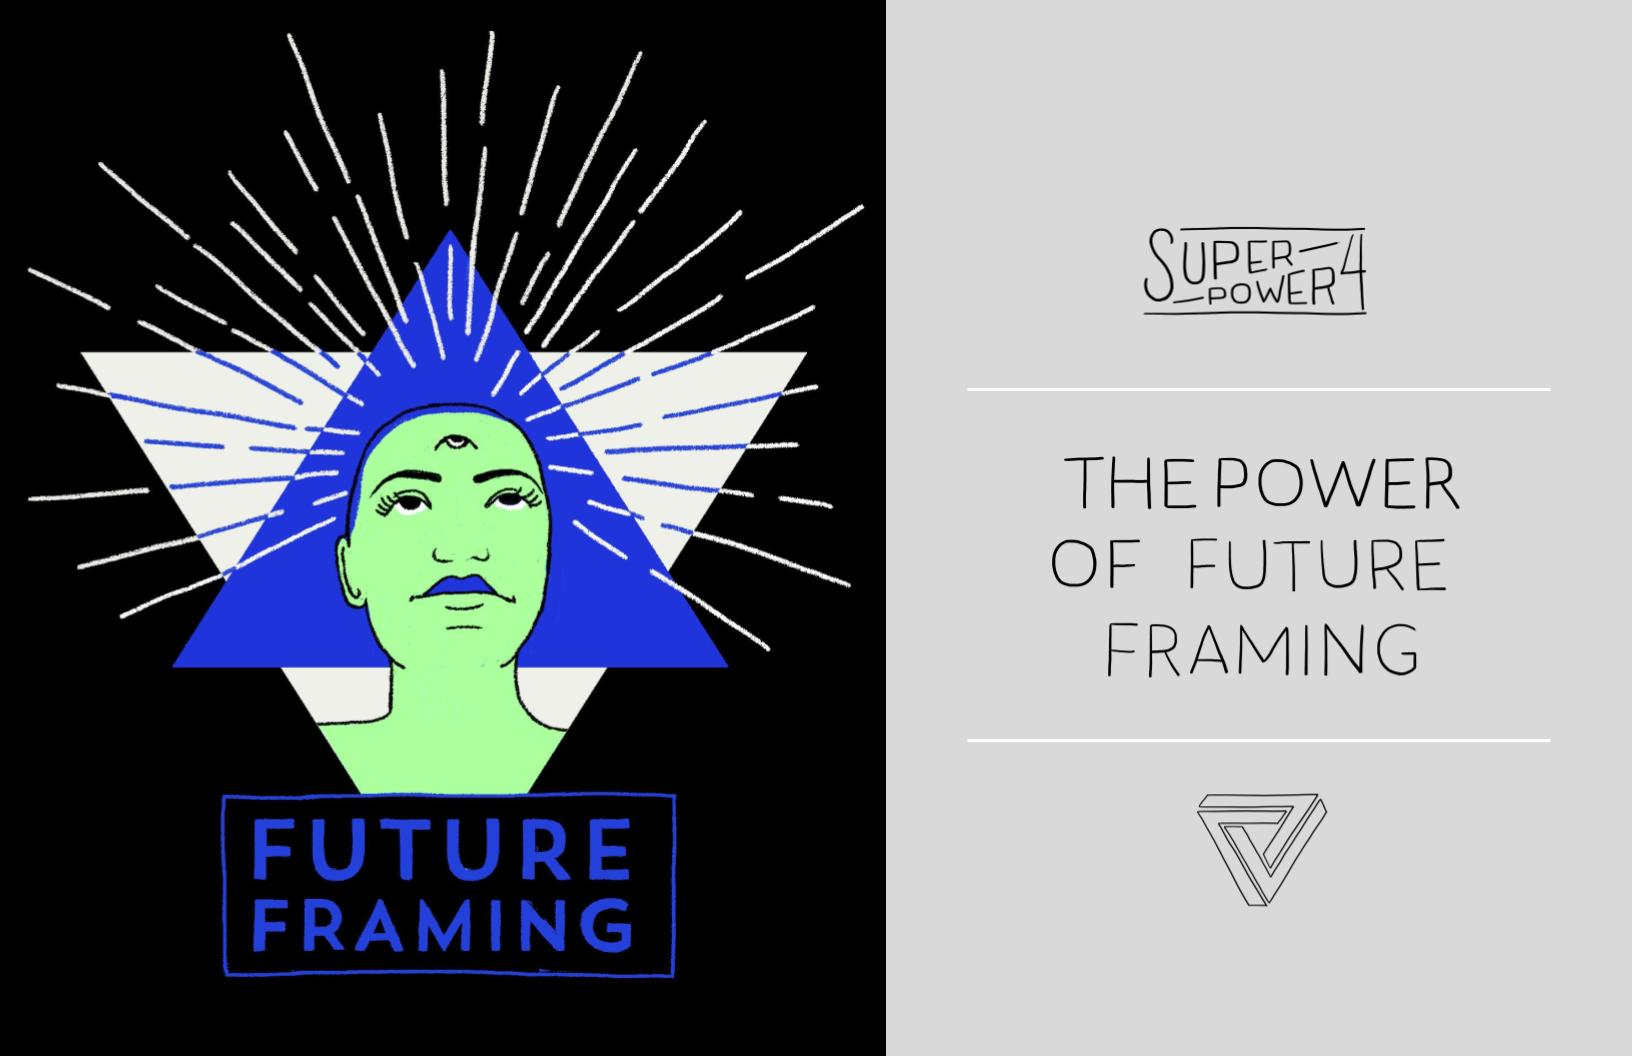 the power of future framing